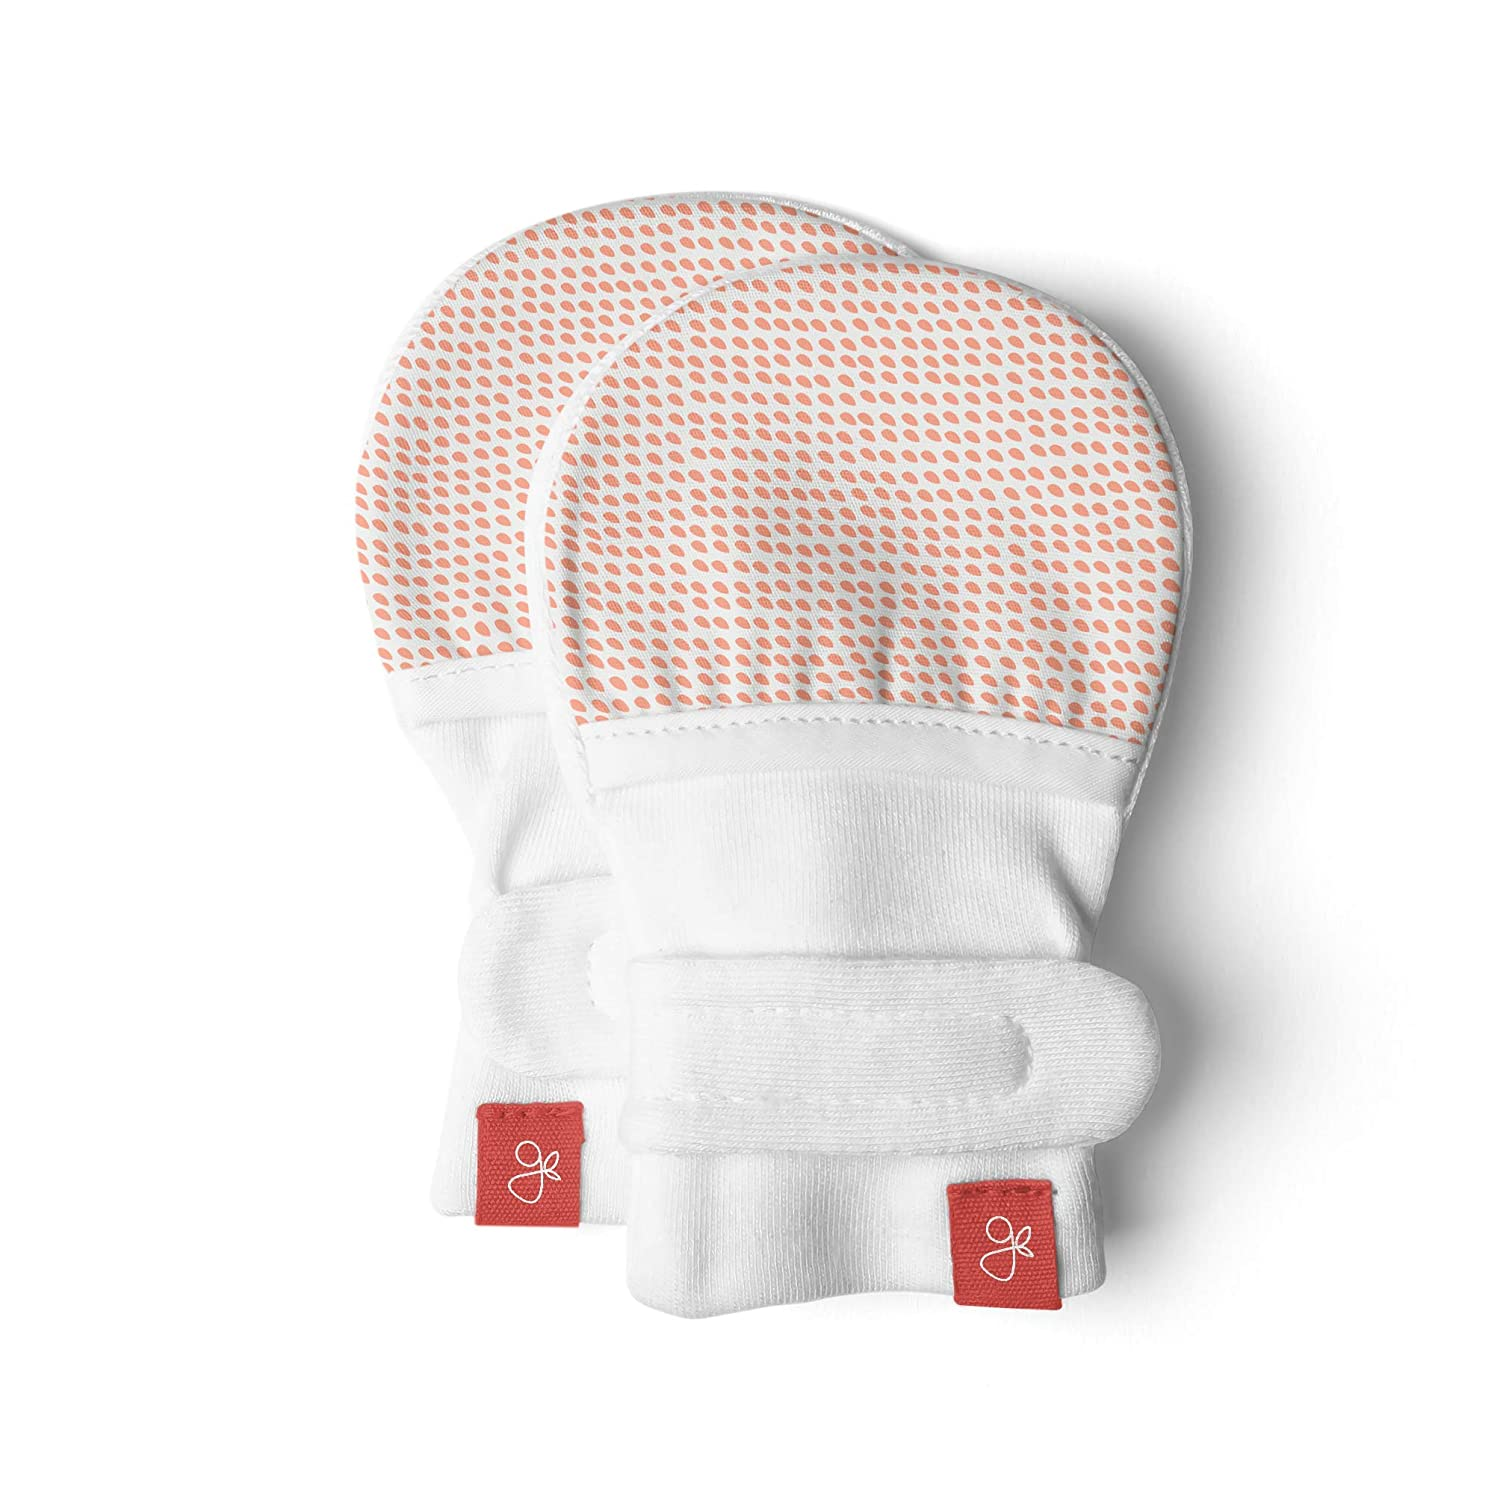 Goumimitts Organic Soft Stay On Unisex Mittens Scratch Free Baby Mittens Stops Scratches and Prevents Germs